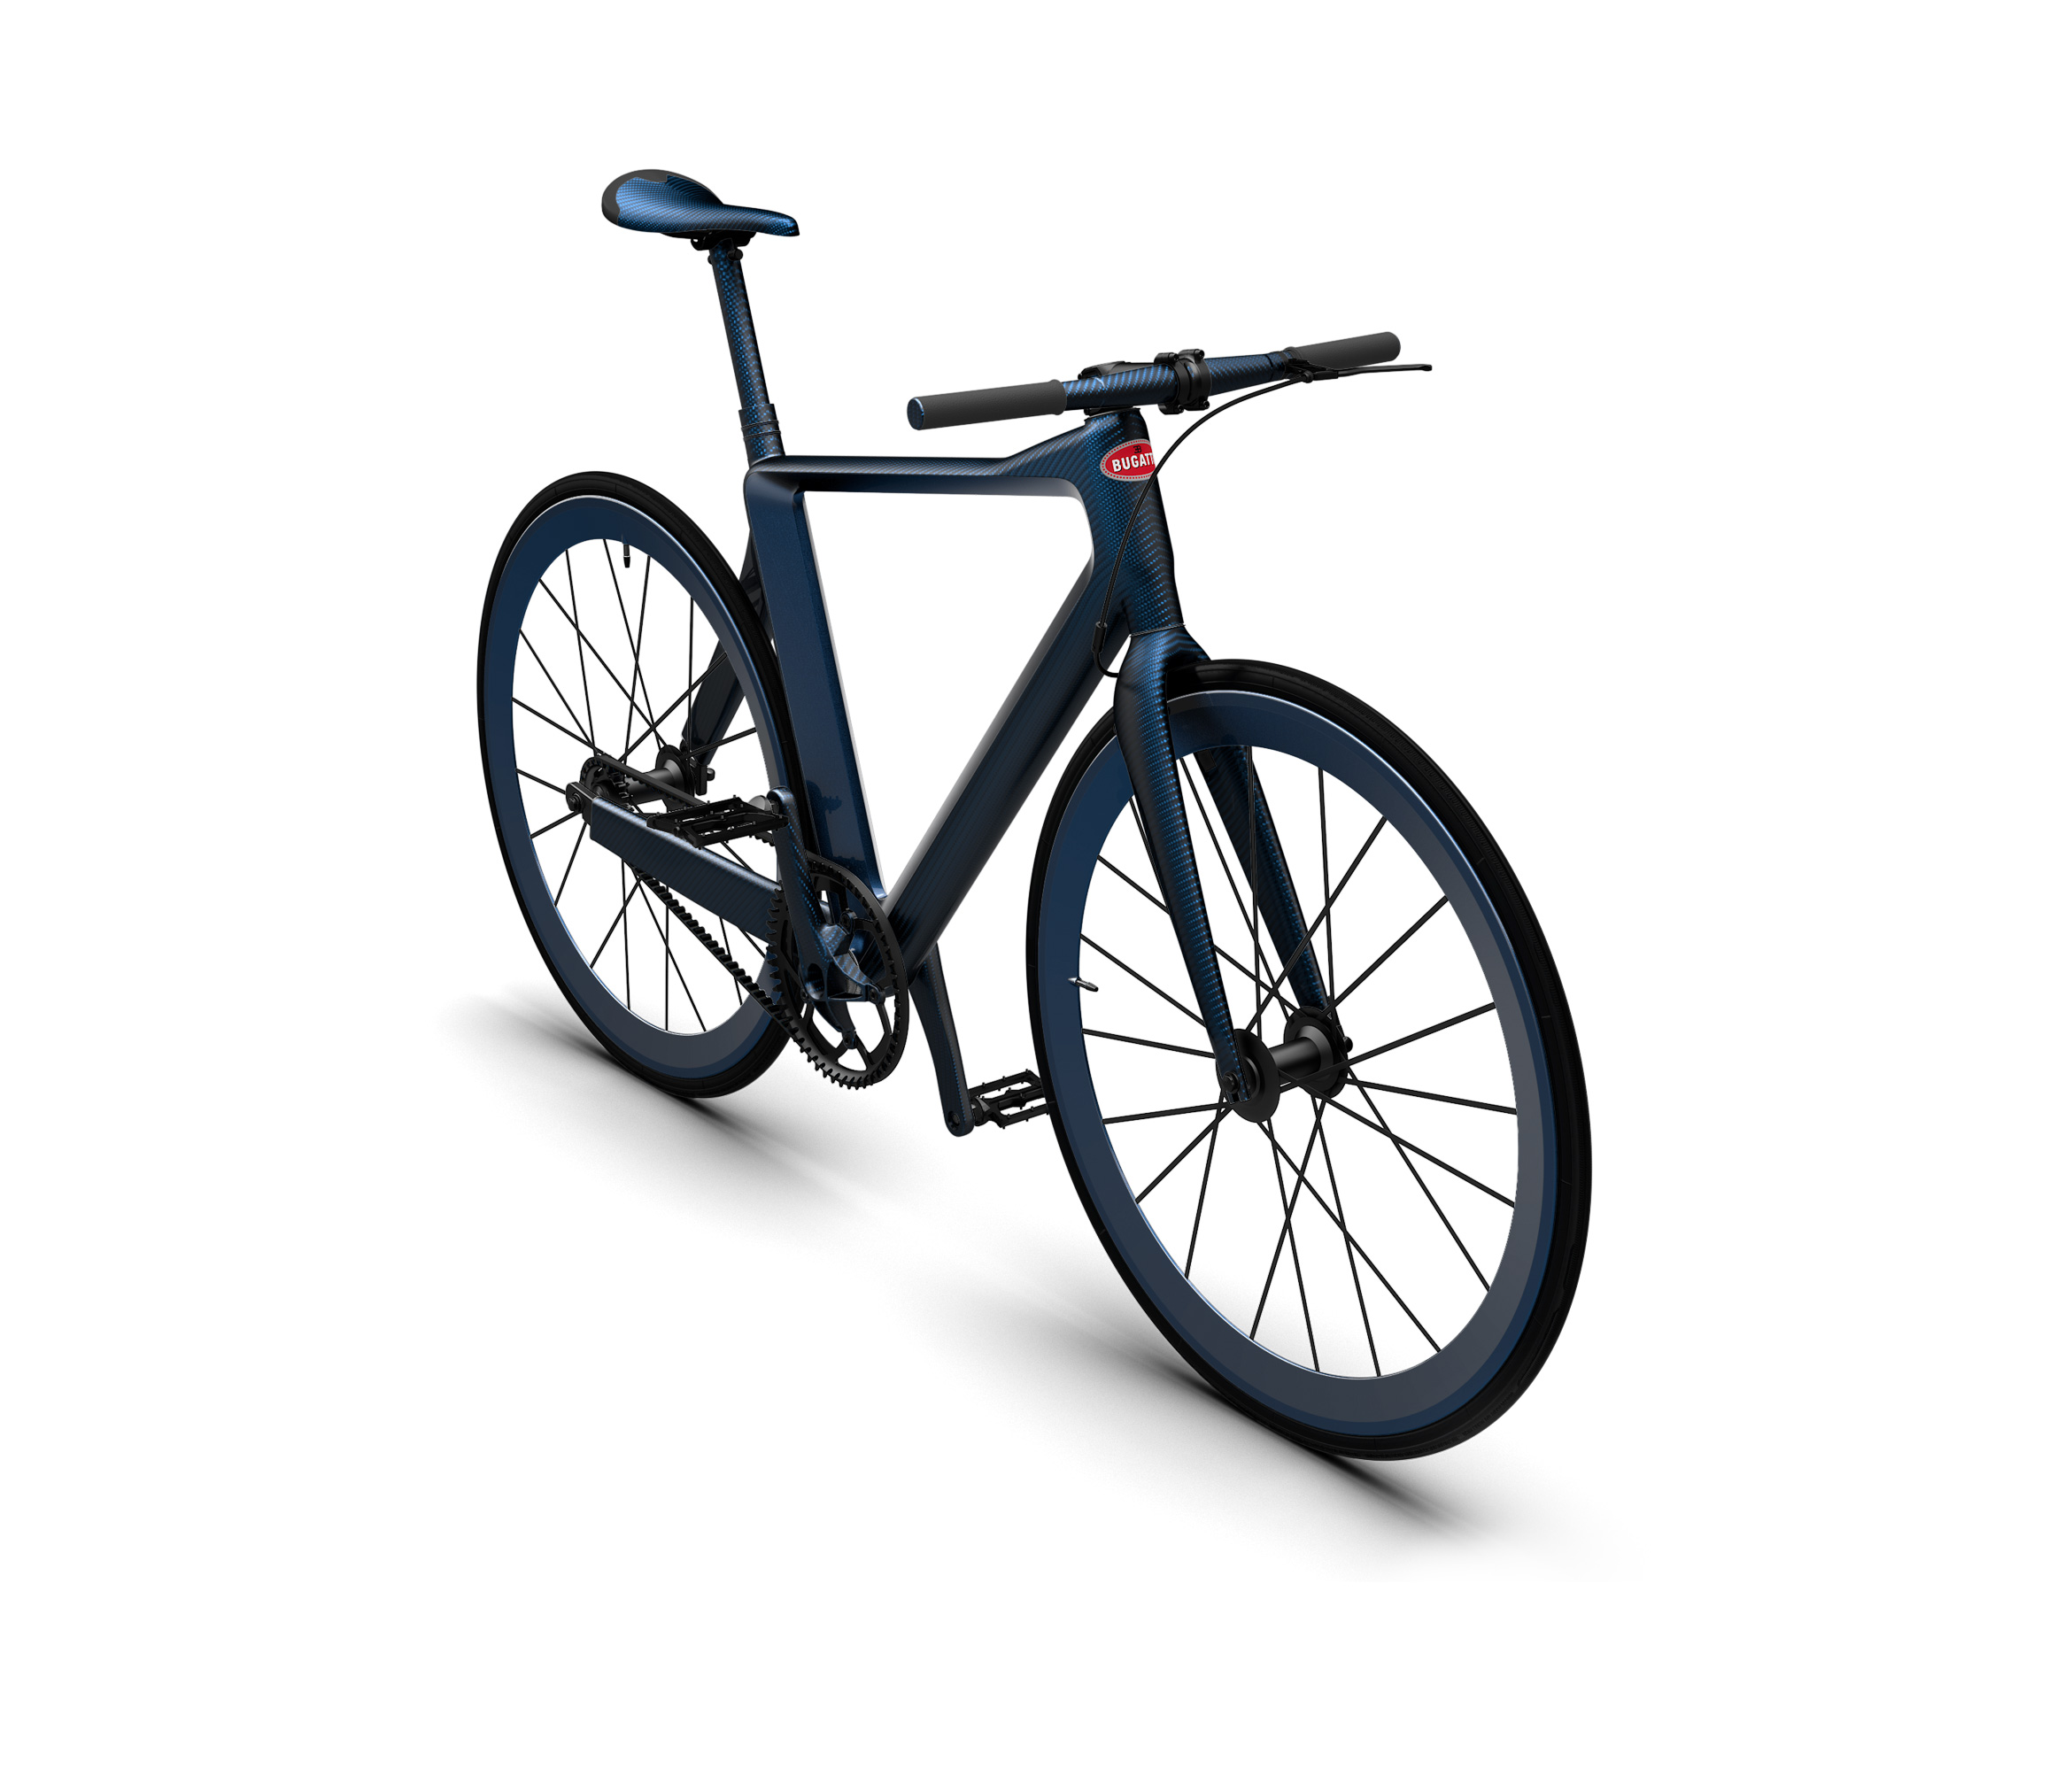 PG Bugatti bicycle (26)